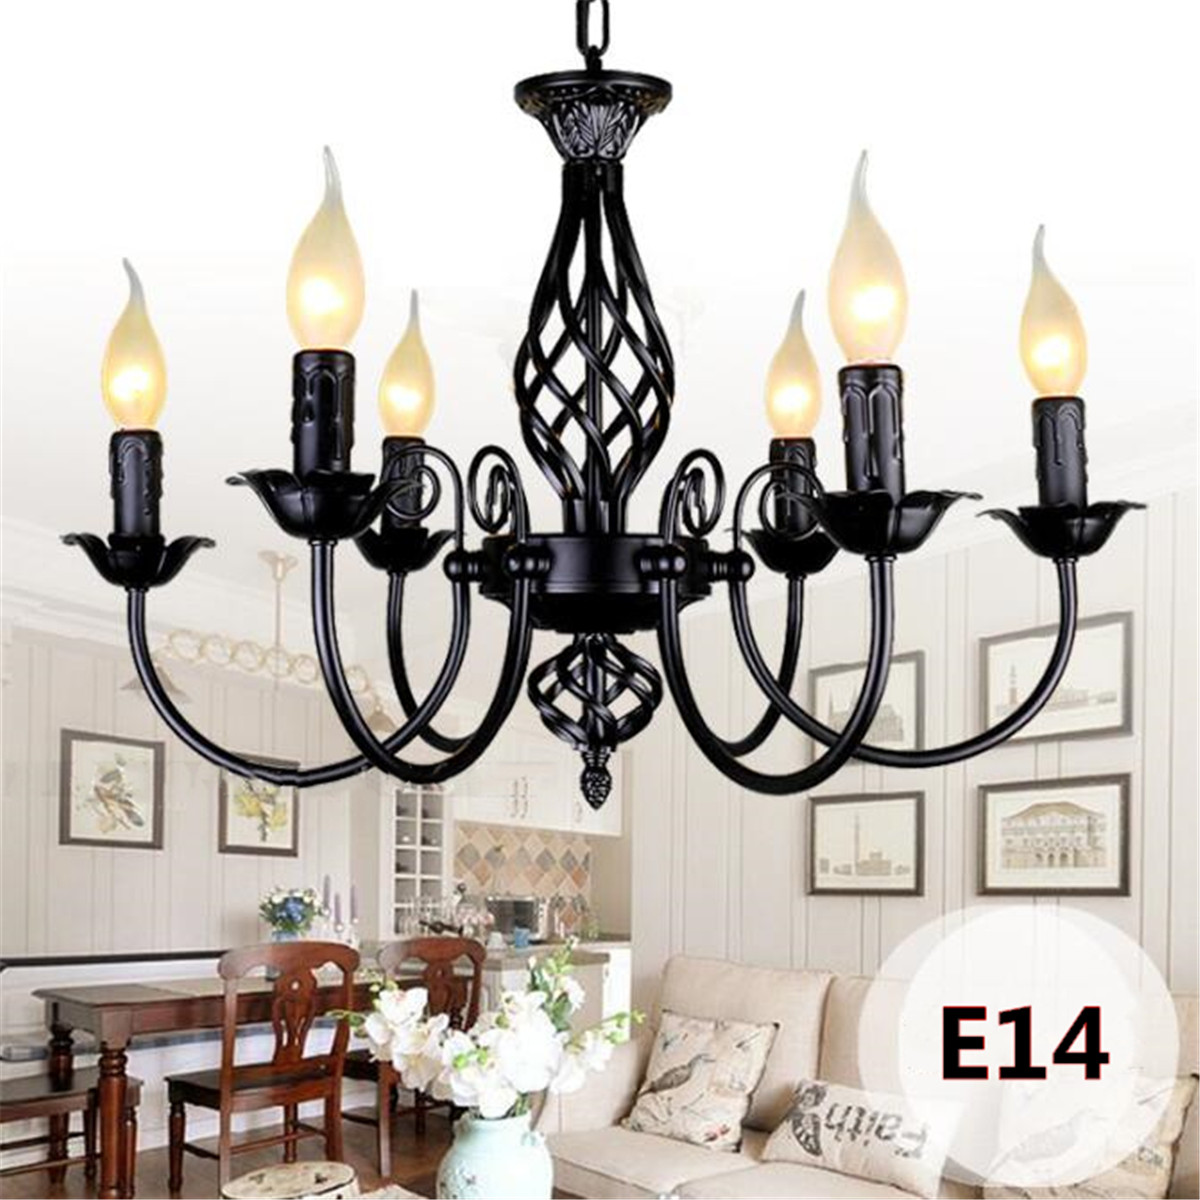 Retro Industrial Chandelier Light 3/4/5/6 Heads European Wrought Iron Lamps For Living Room Bar Restaurant E14 Lustre Luminaria